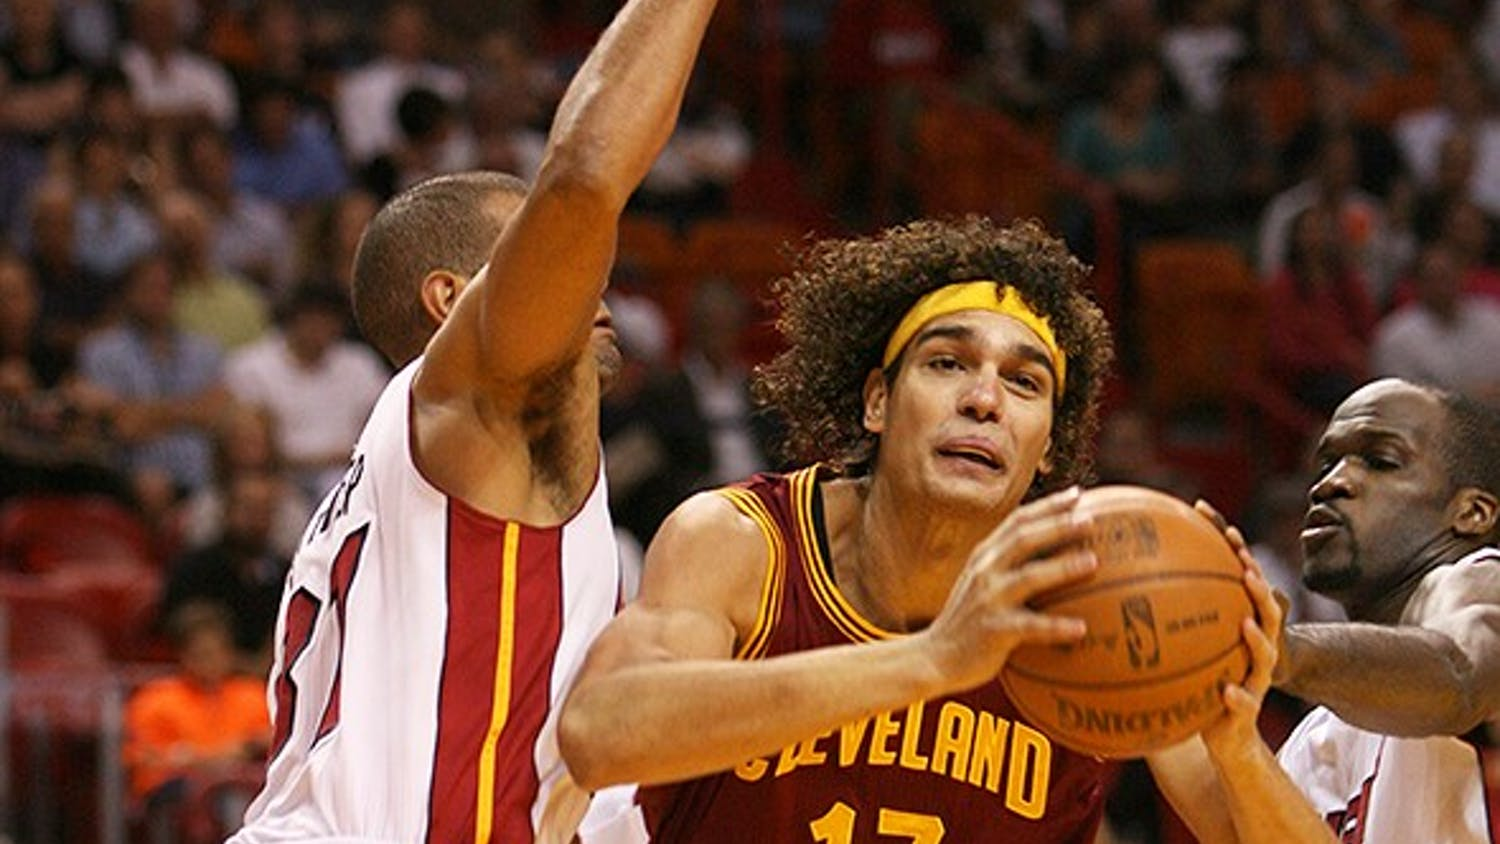 The Cleveland Cavaliers' Anderson Varejao (17) goes to the basket against Shane Battier, left, and Joel Anthony of the Miami Heat during the first quarter at the AmericanAirlines Arena in Miami, Florida, on Tuesday, January 24, 2012. Miami topped Cleveland, 92-85. (David Santiago/Miami Herald/MCT)